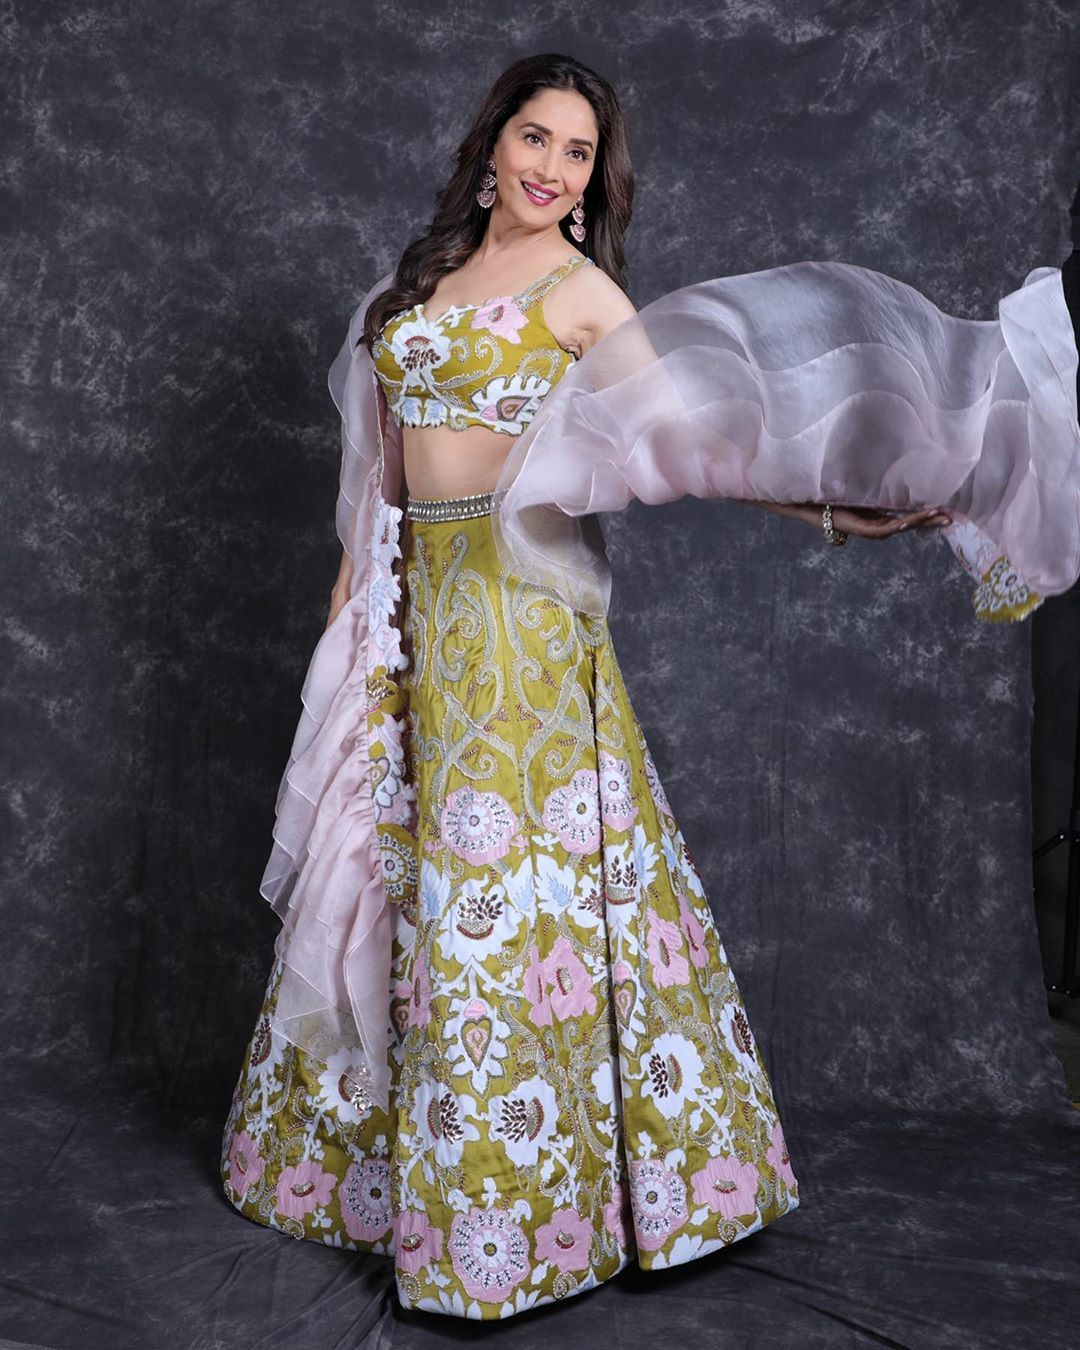 120 Madhuri Dixit Latest Pics, Full Hd Images And Photo -5806